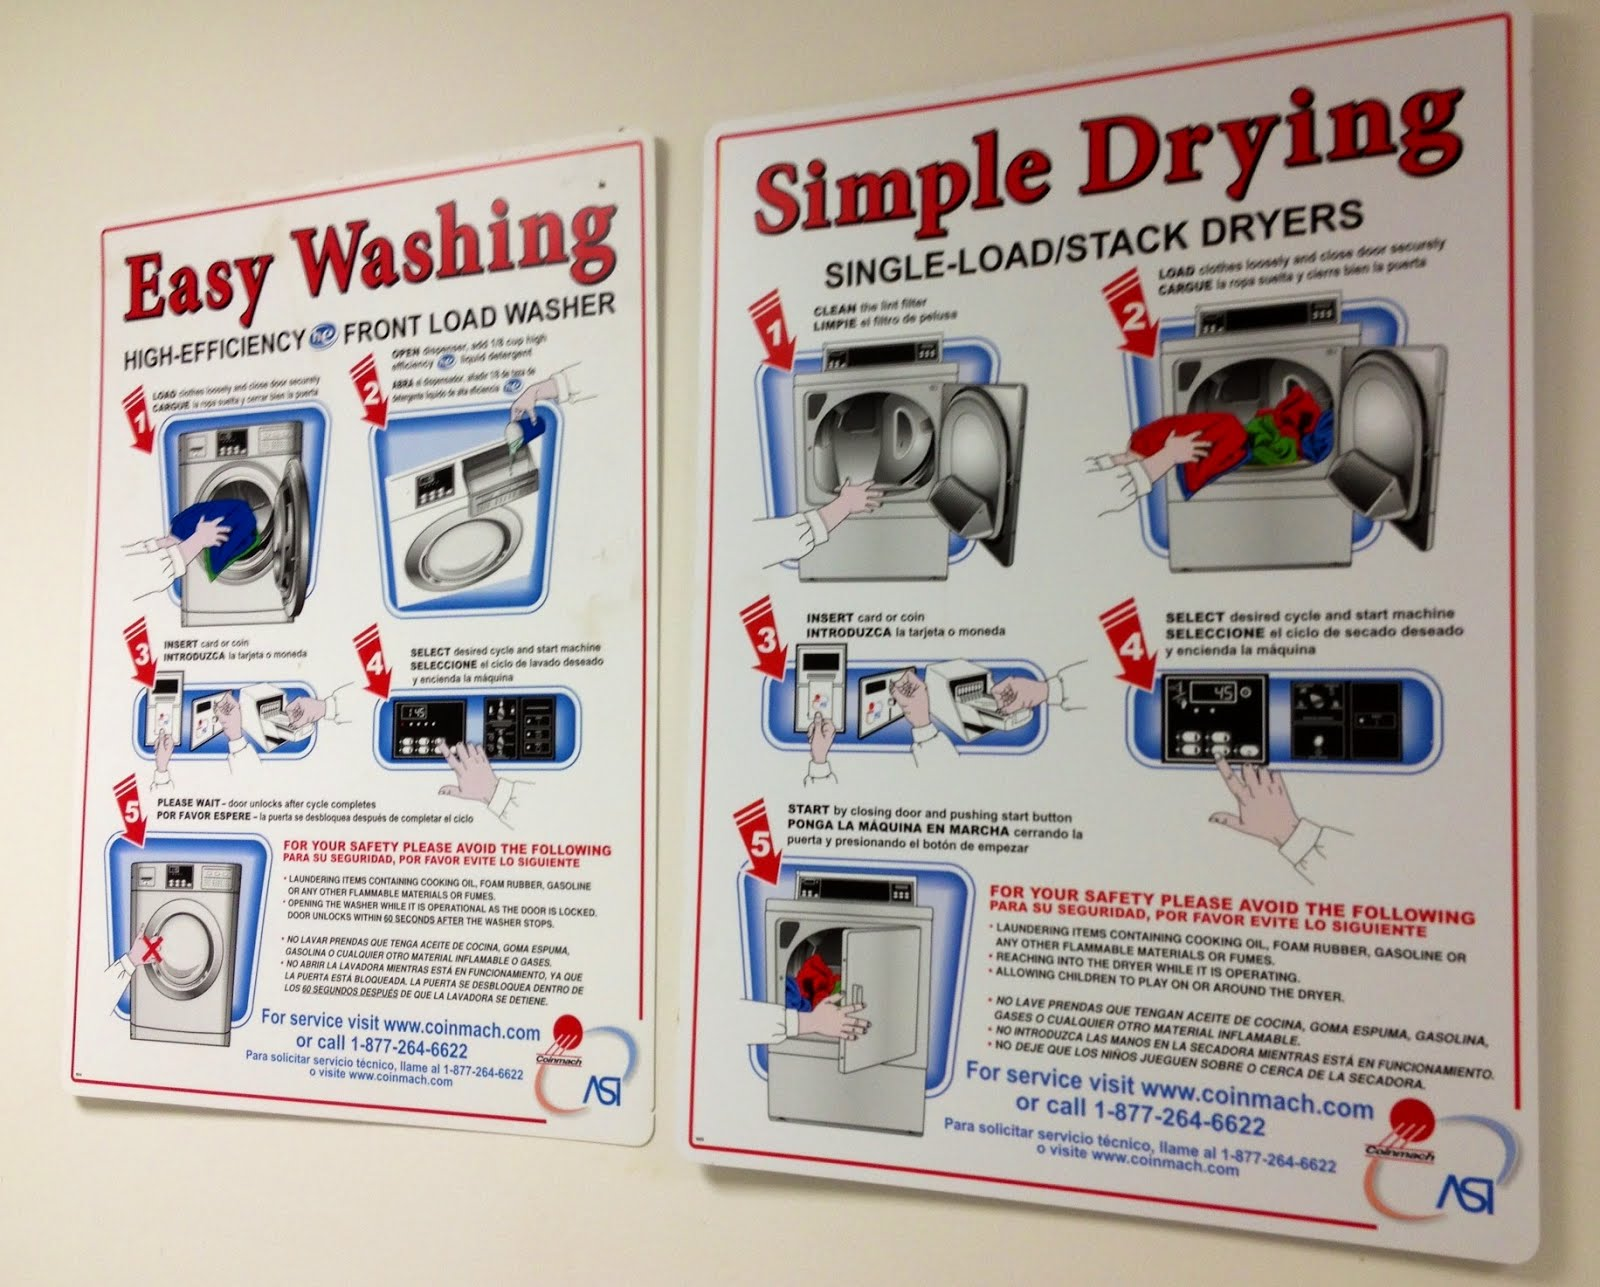 Wave Rider Laundry System